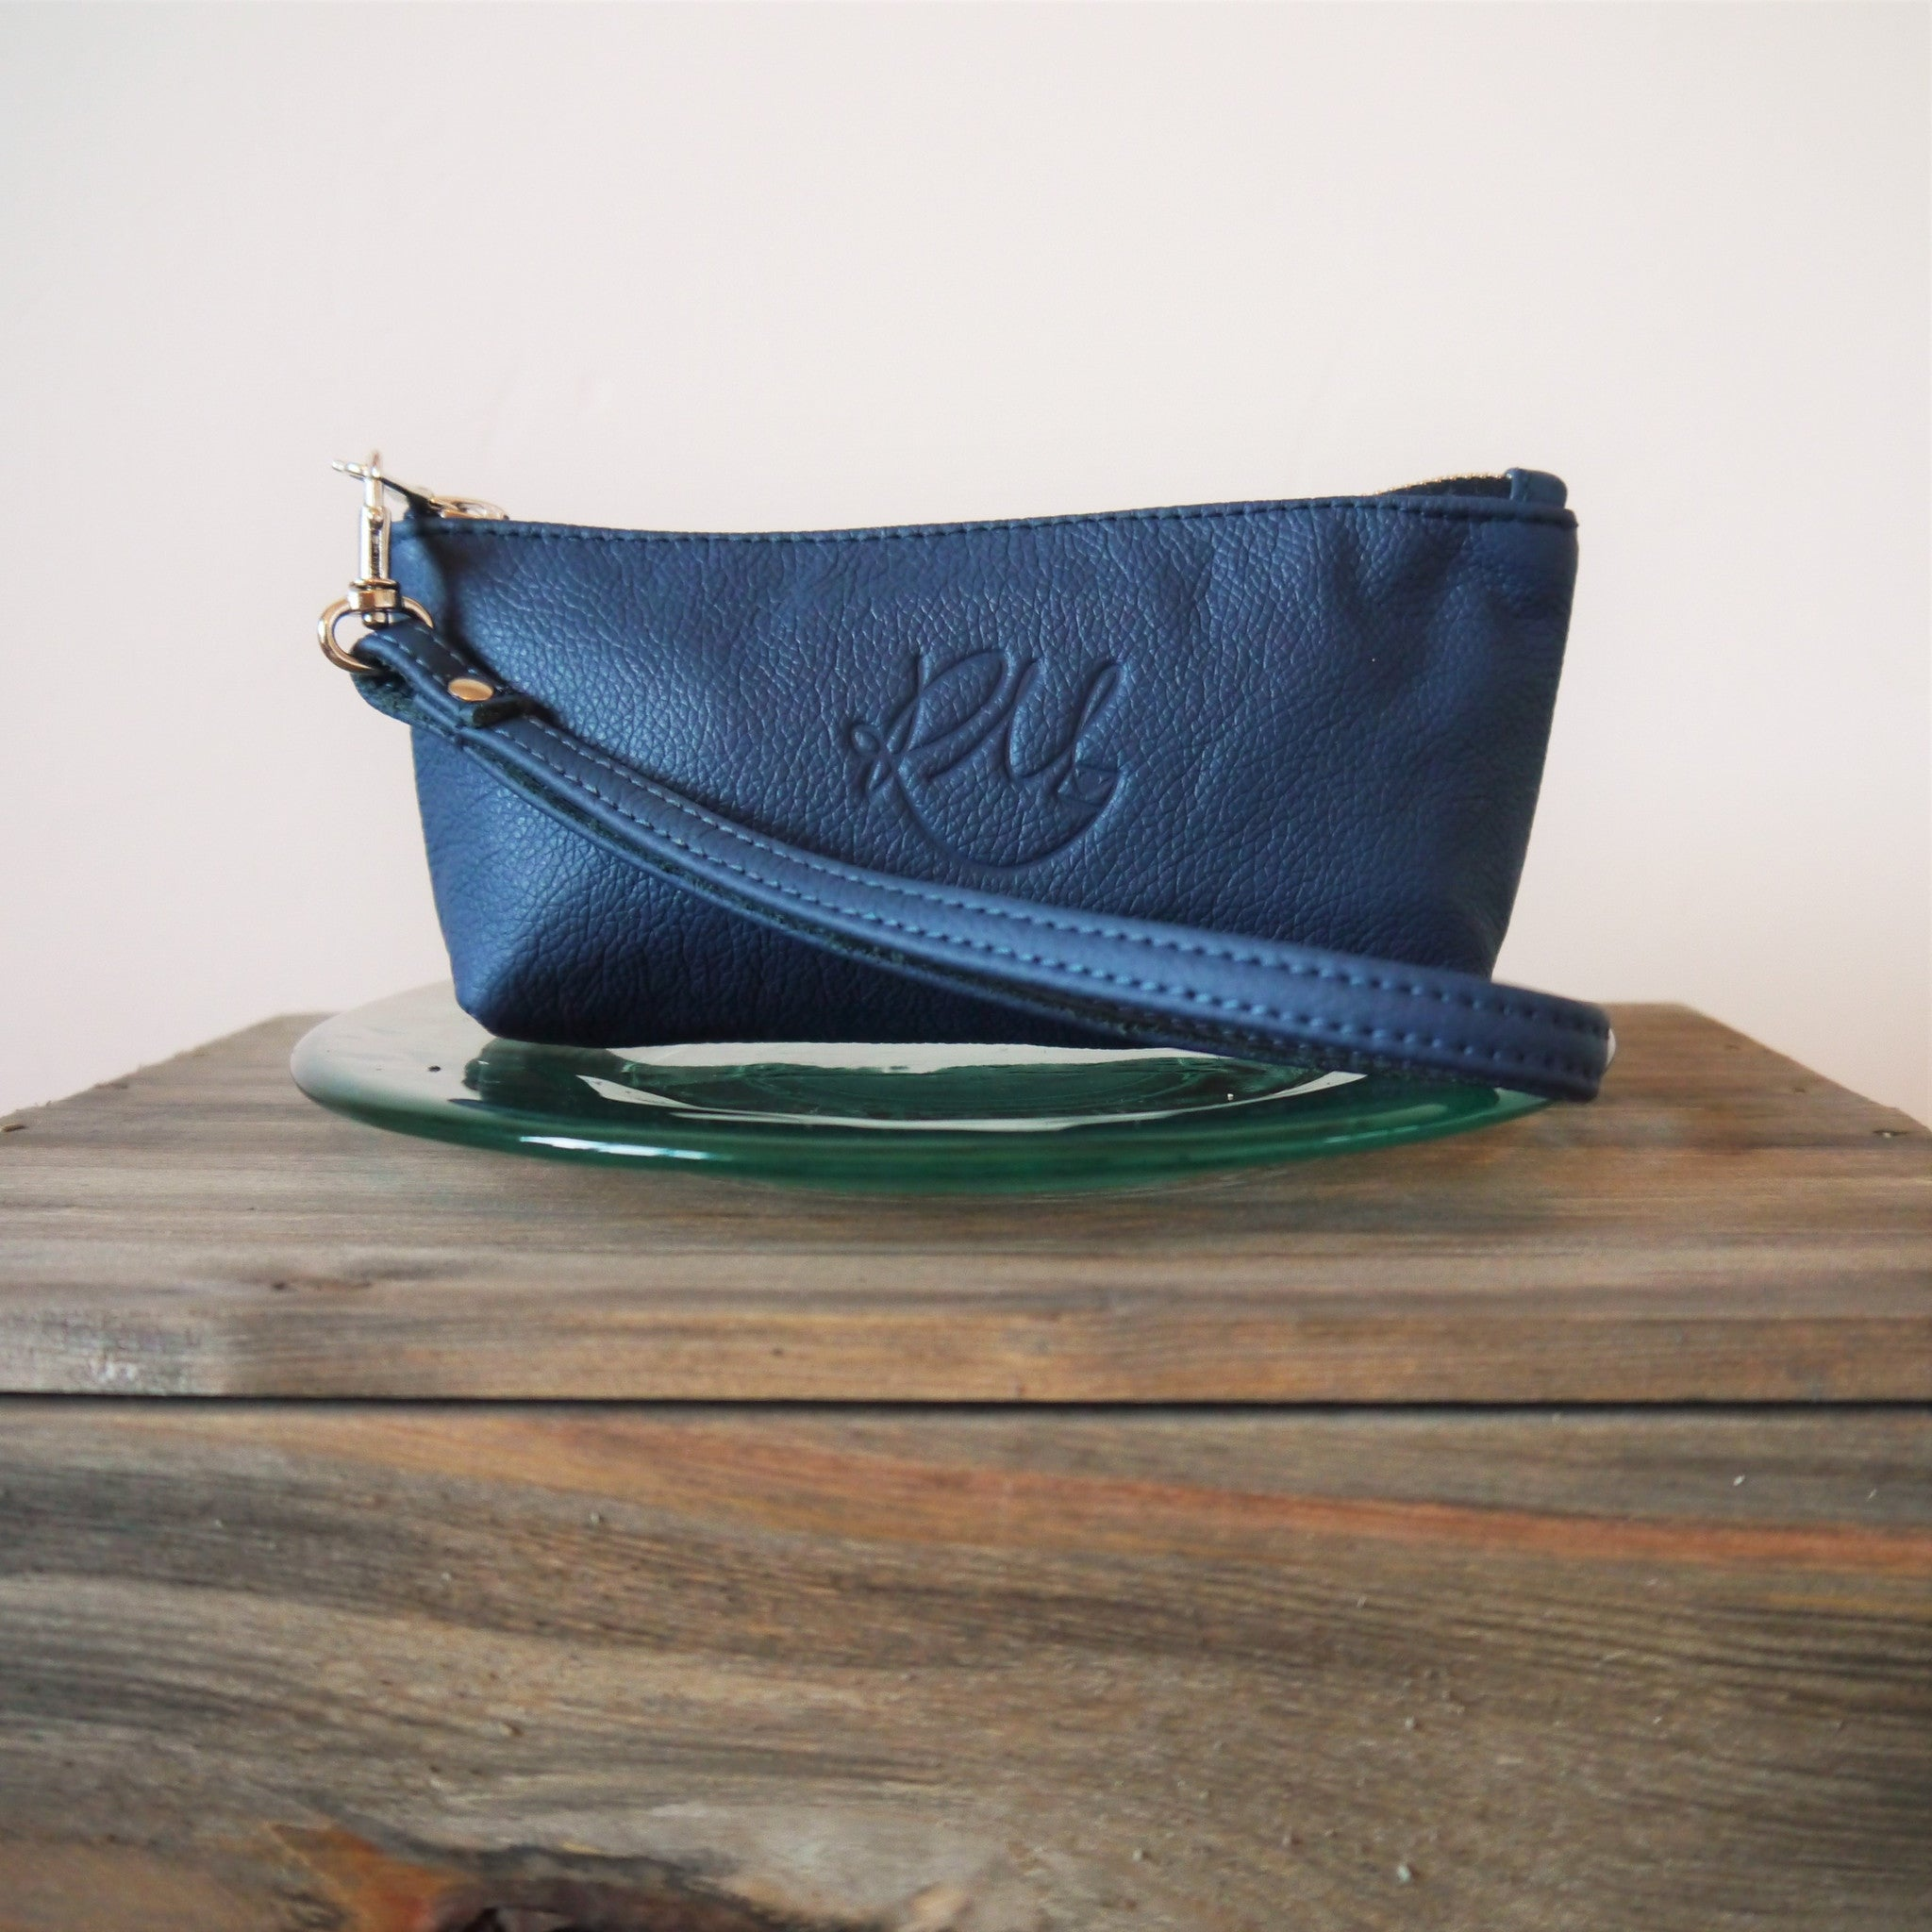 S/S16 Poppy small leather make up bag - Navy